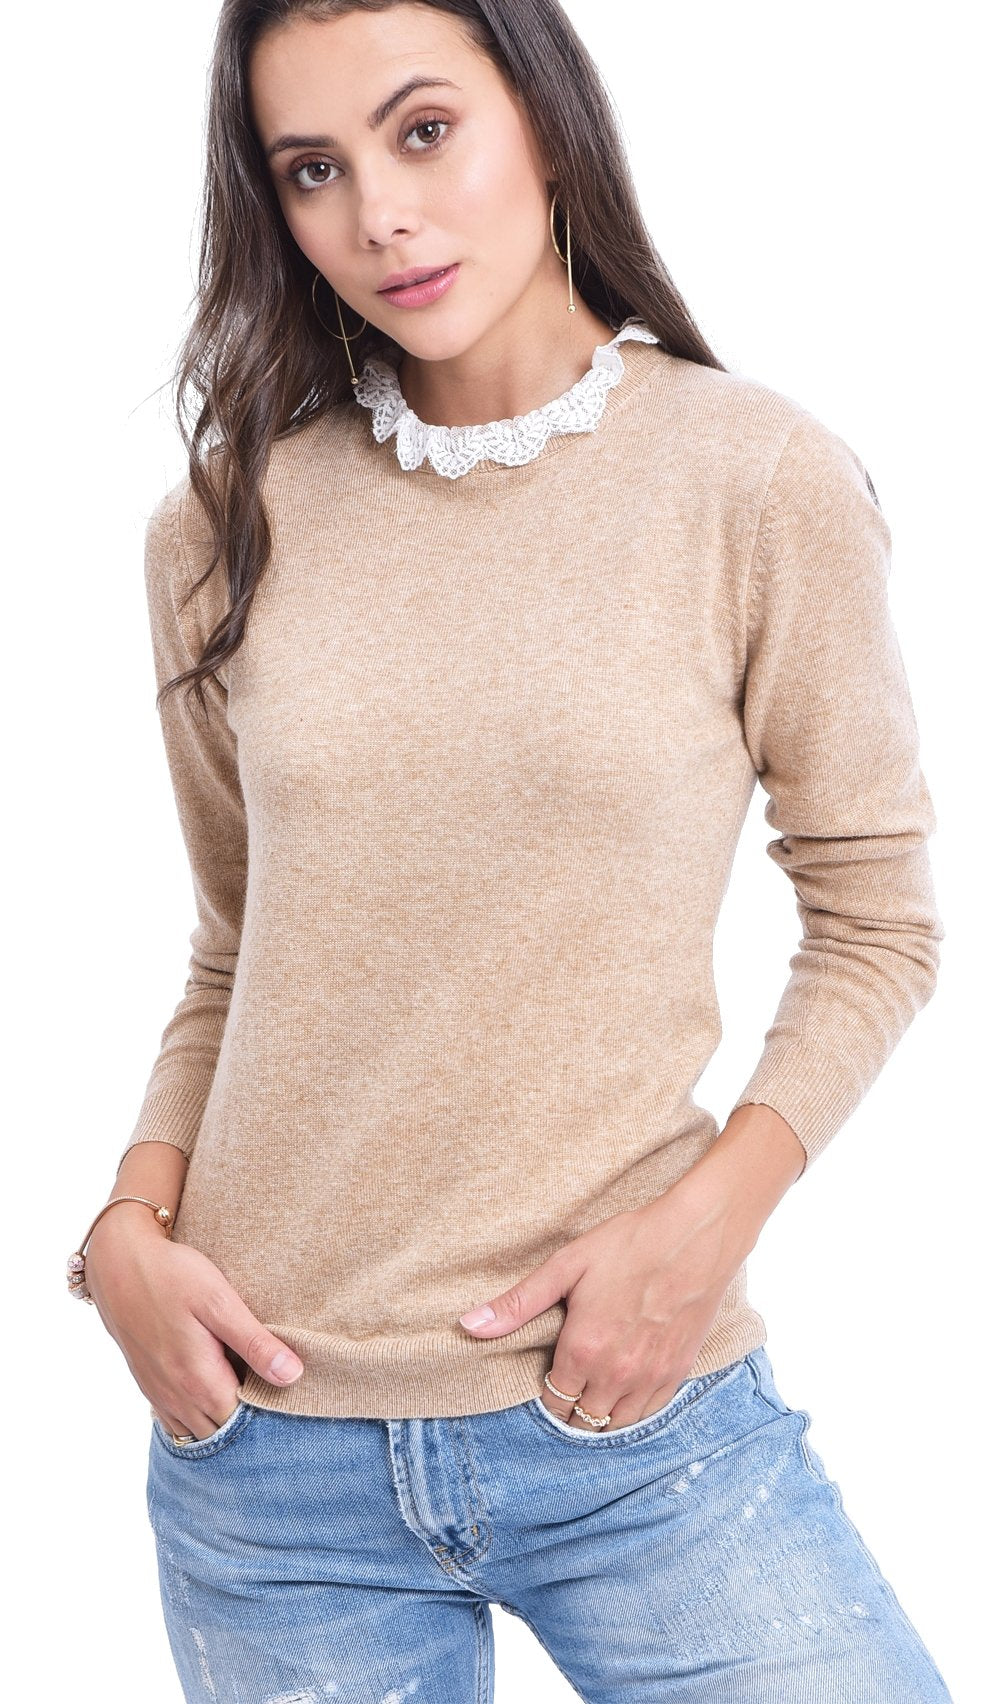 RUFFLED COLLAR IN LACE SWEATER